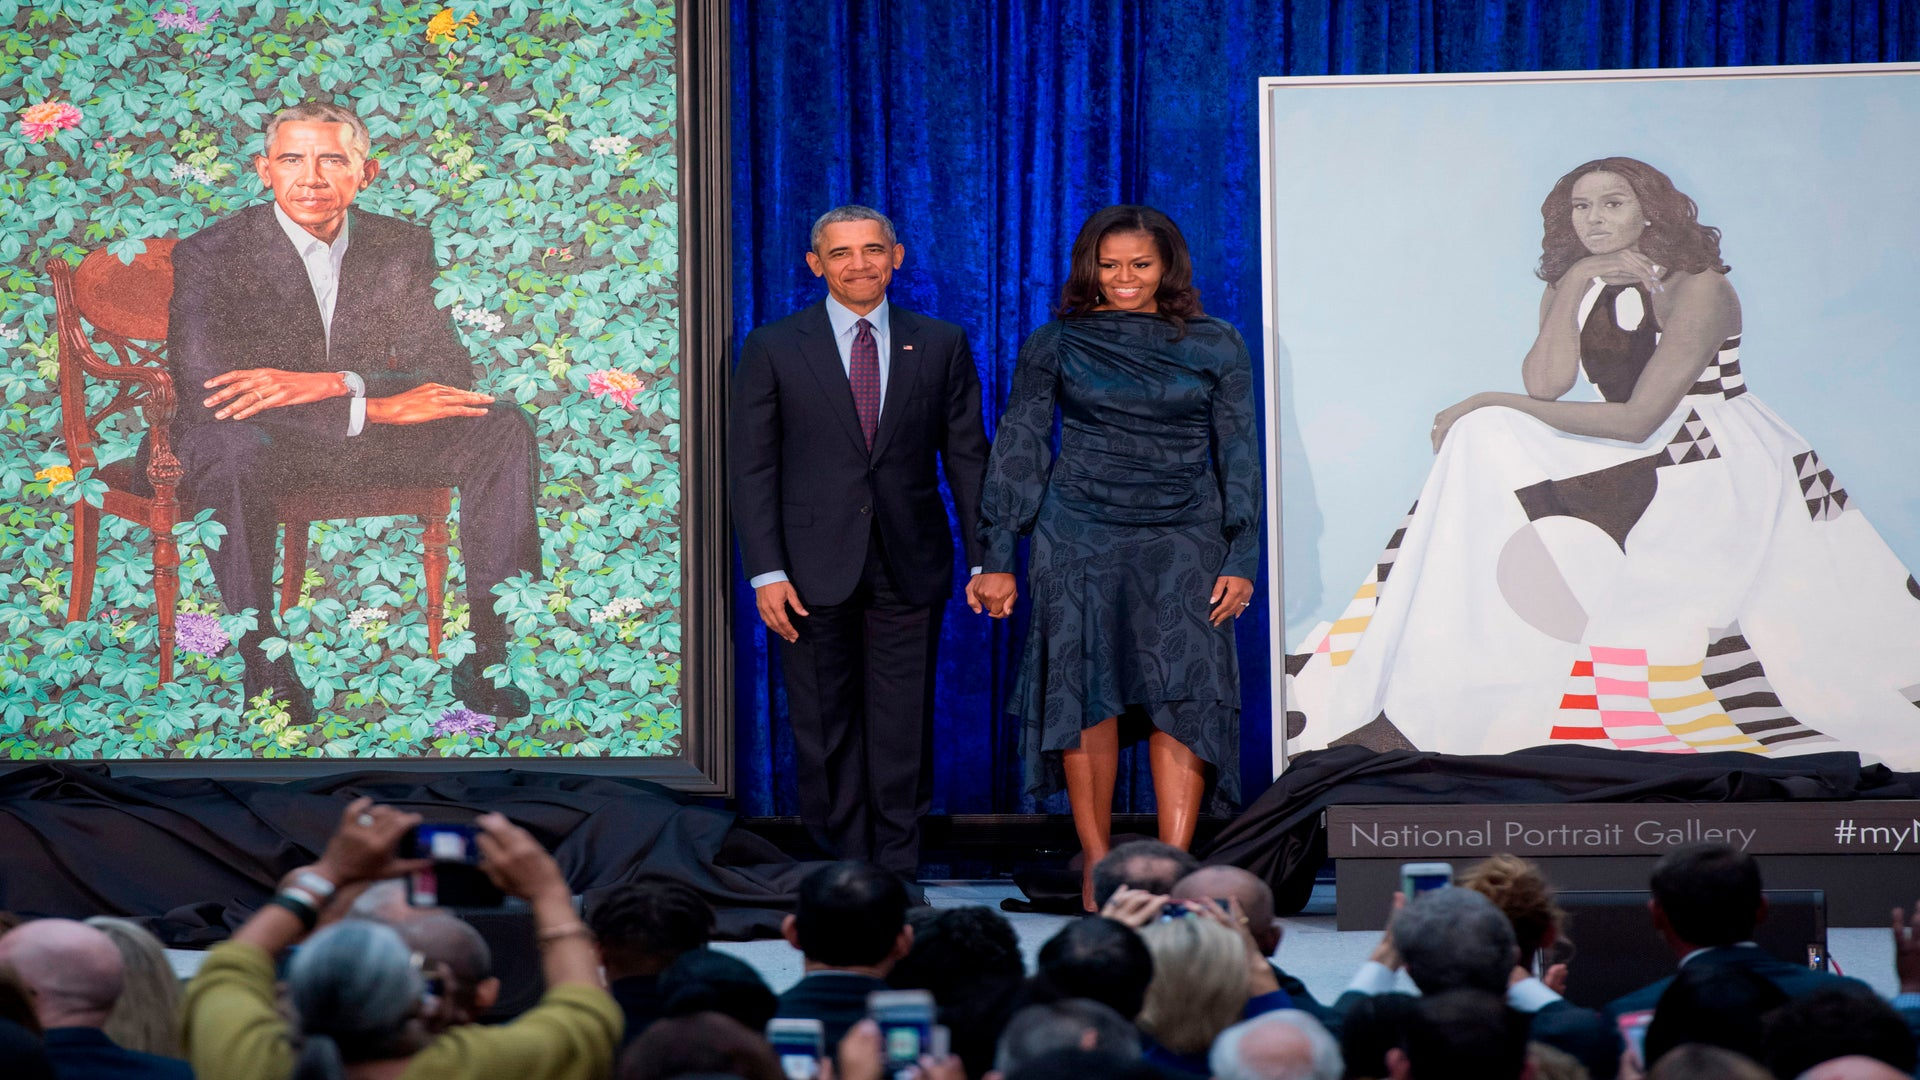 Barack And Michelle Obama Official Portraits